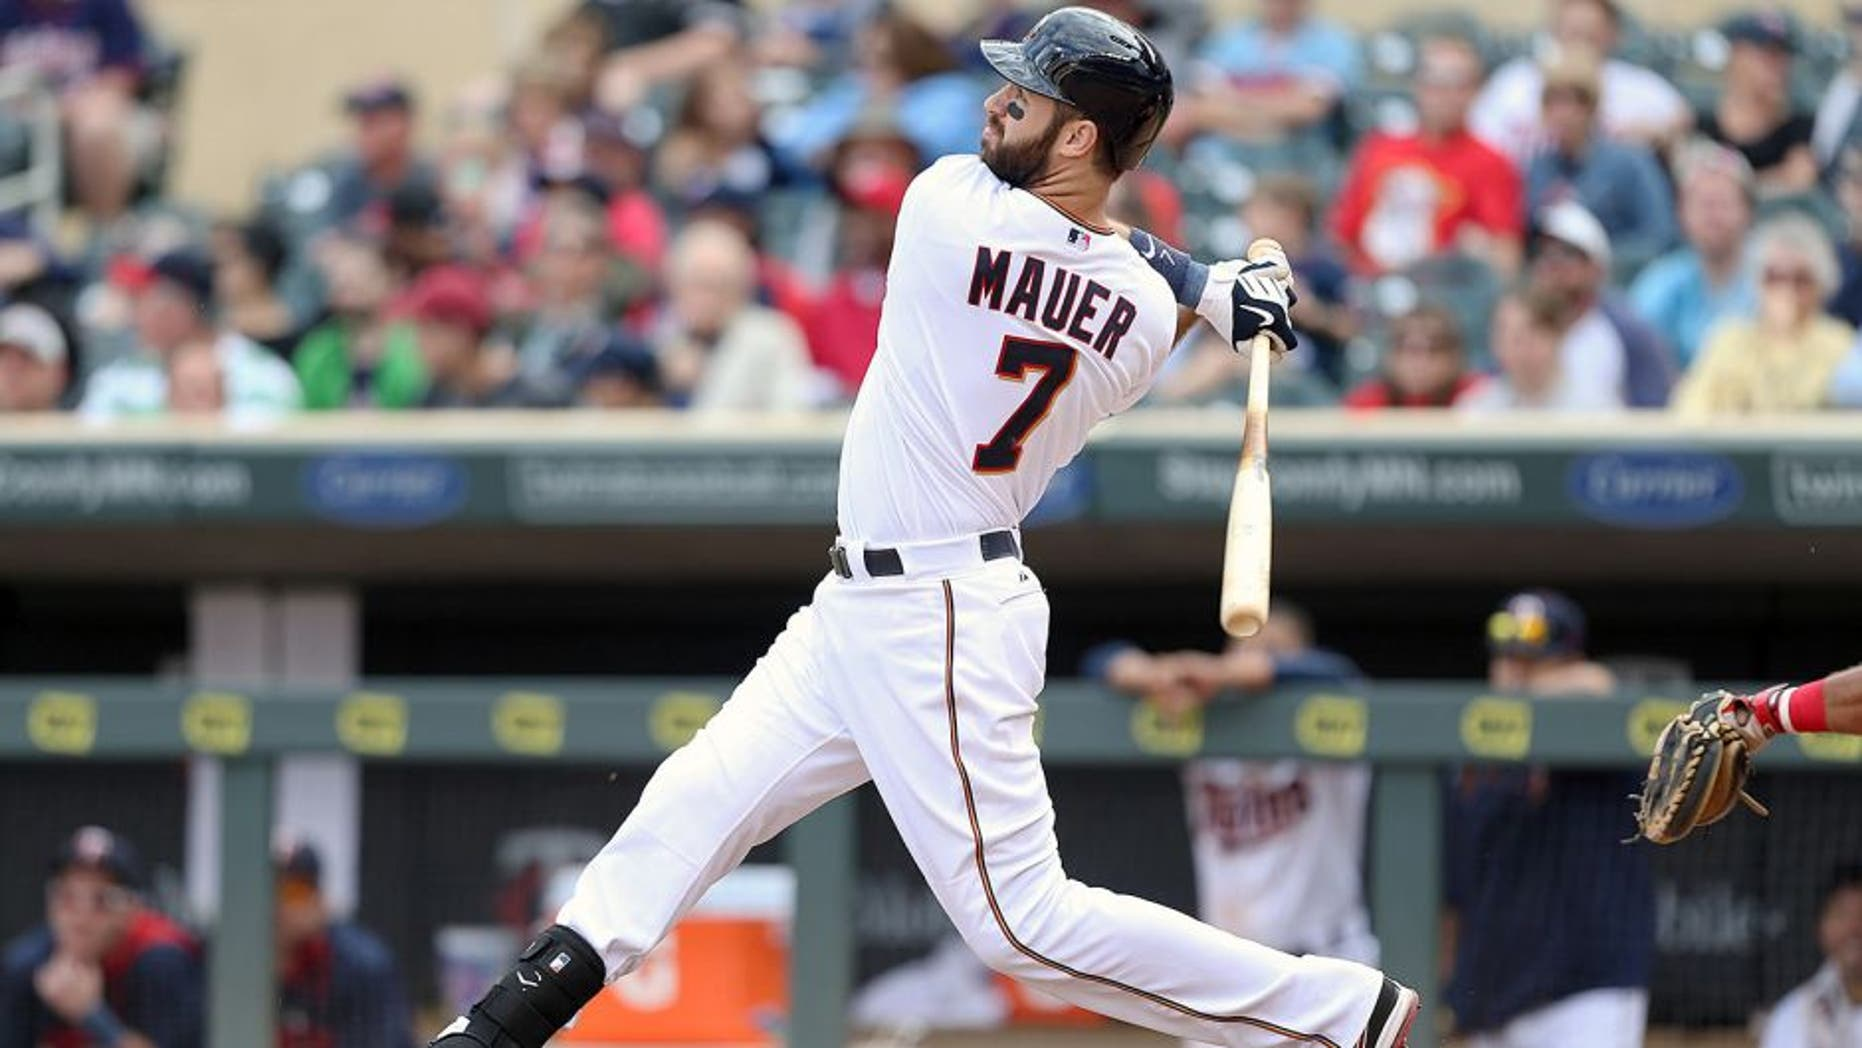 MINNEAPOLIS, MN - SEPTEMBER 20: Joe Mauer #7 of the Minnesota Twins hits a solo home run in the 8th inning against the Los Angeles Angels of Anaheim at Target Field on September 20, 2015 in Minneapolis, Minnesota. The Twins defeated the Angels 8-1. (Photo by David Sherman/Getty Images)